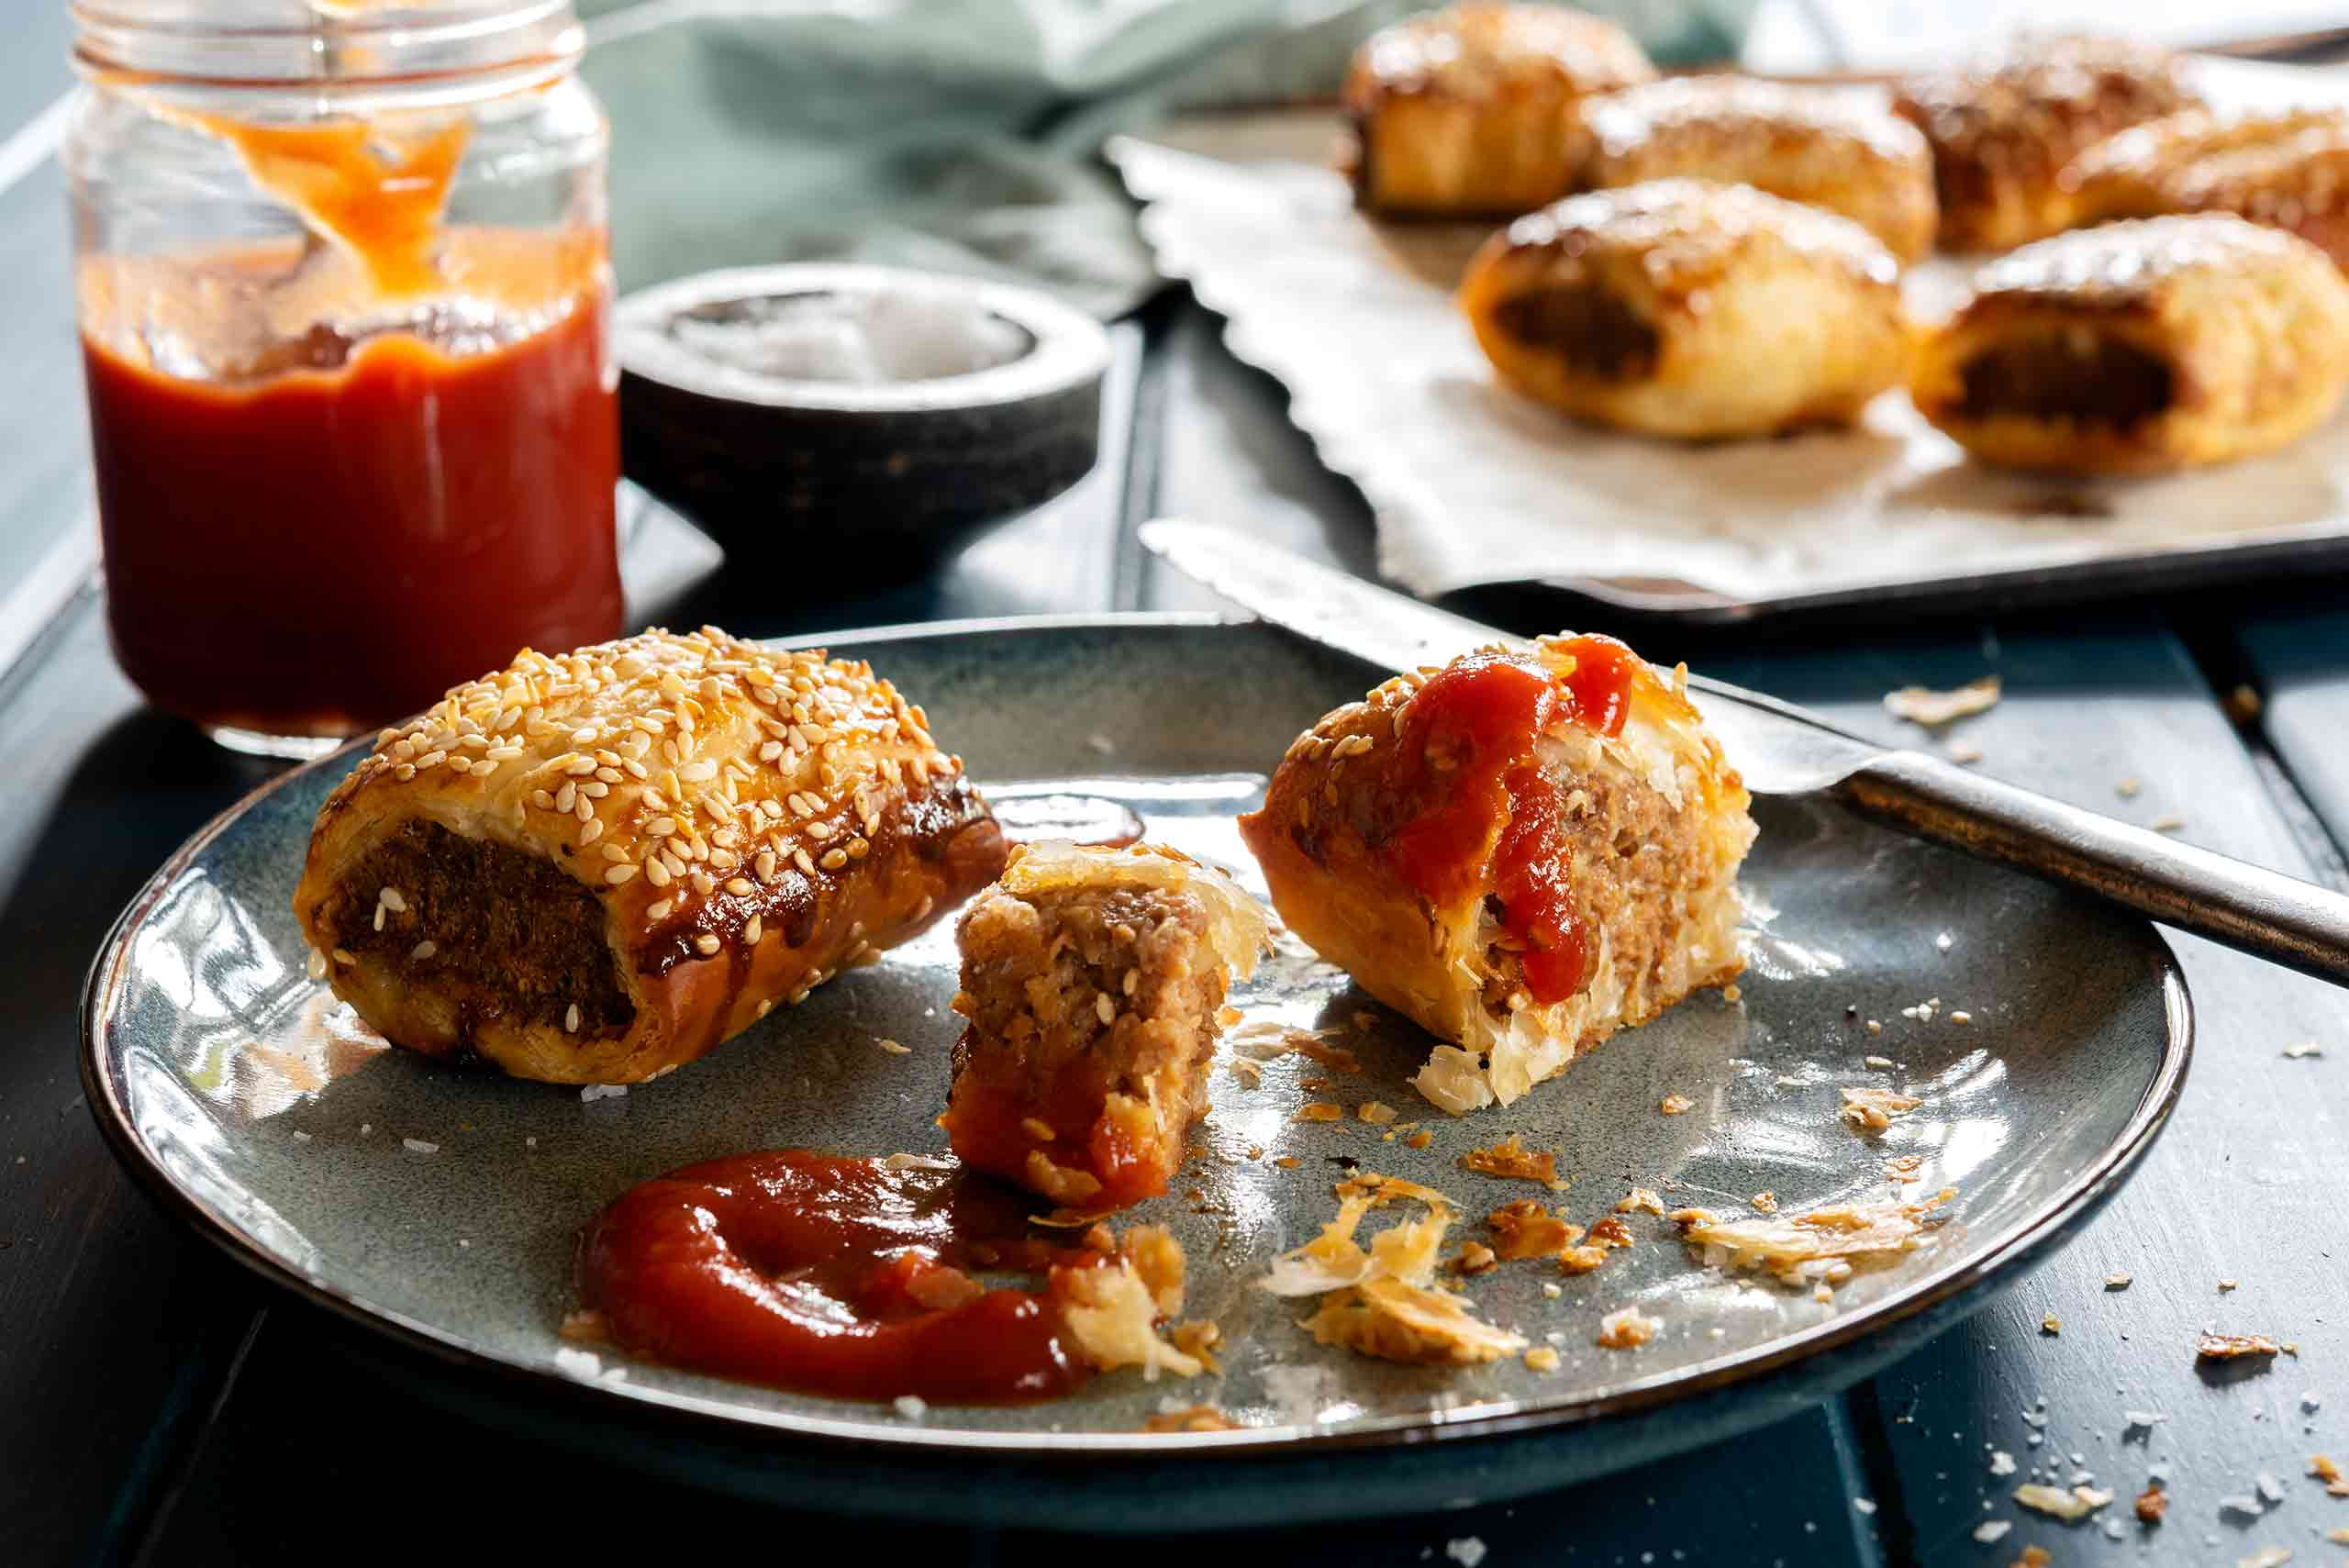 Food photography featuring delicious homemade sausage rolls